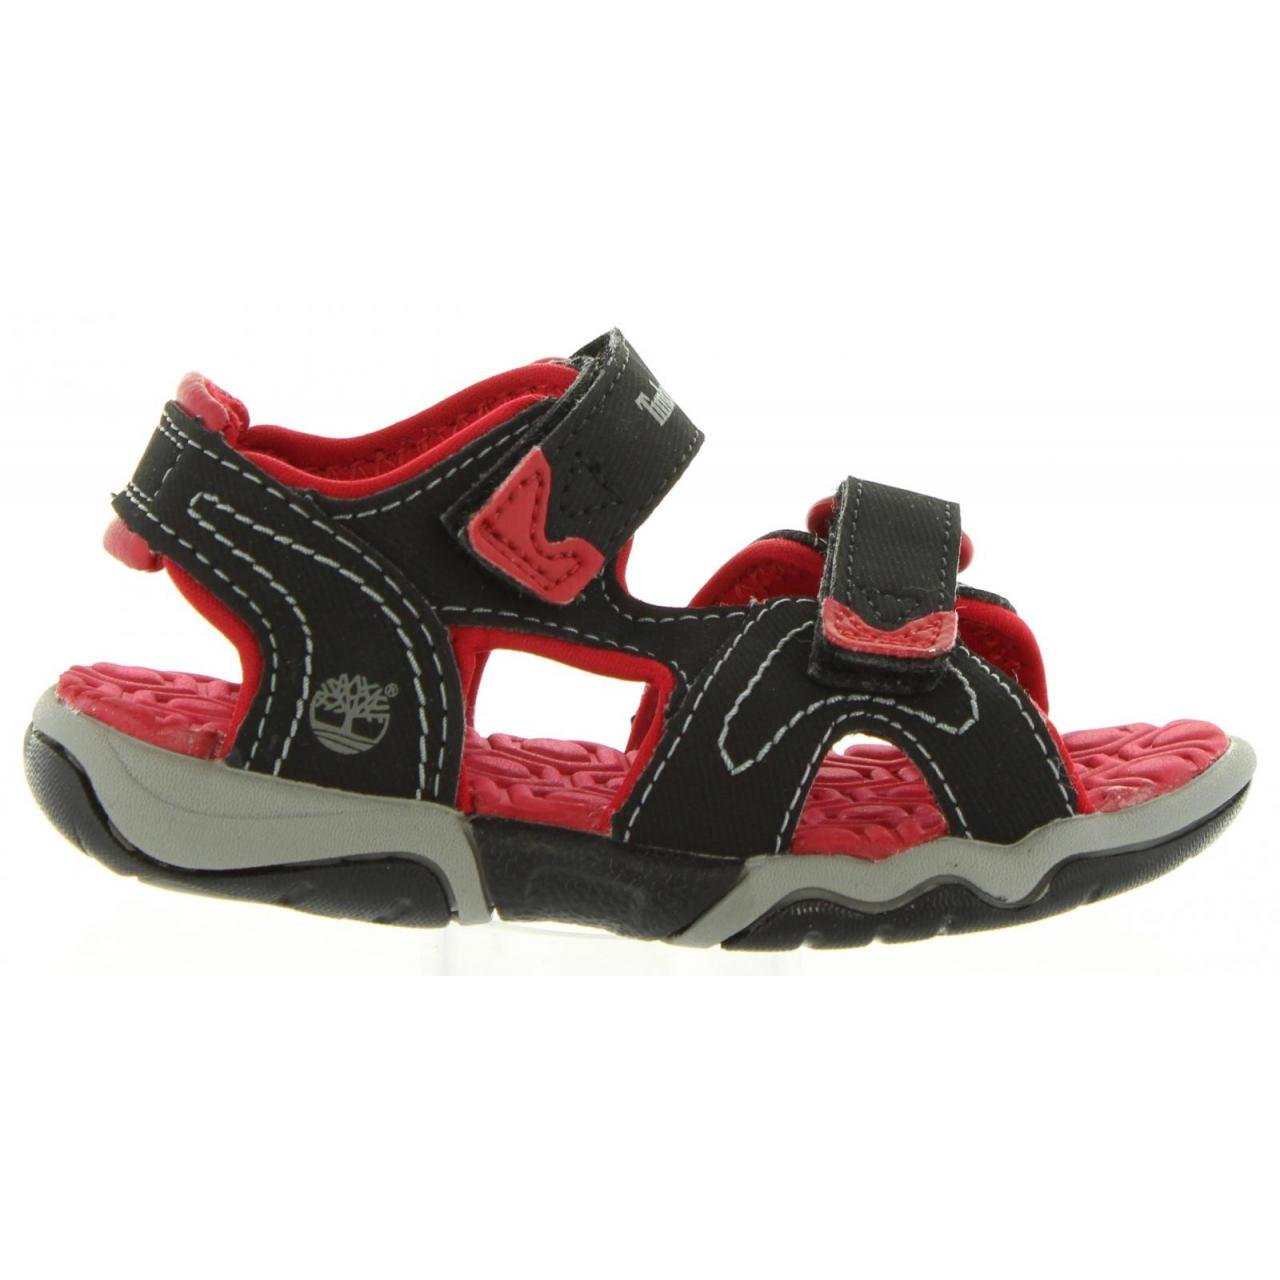 Timberland Toddler C3480A Adventure Seeker Two-Strap Leather Sandal, Color: Black/Red, Size 5.5(M) US Little Kid